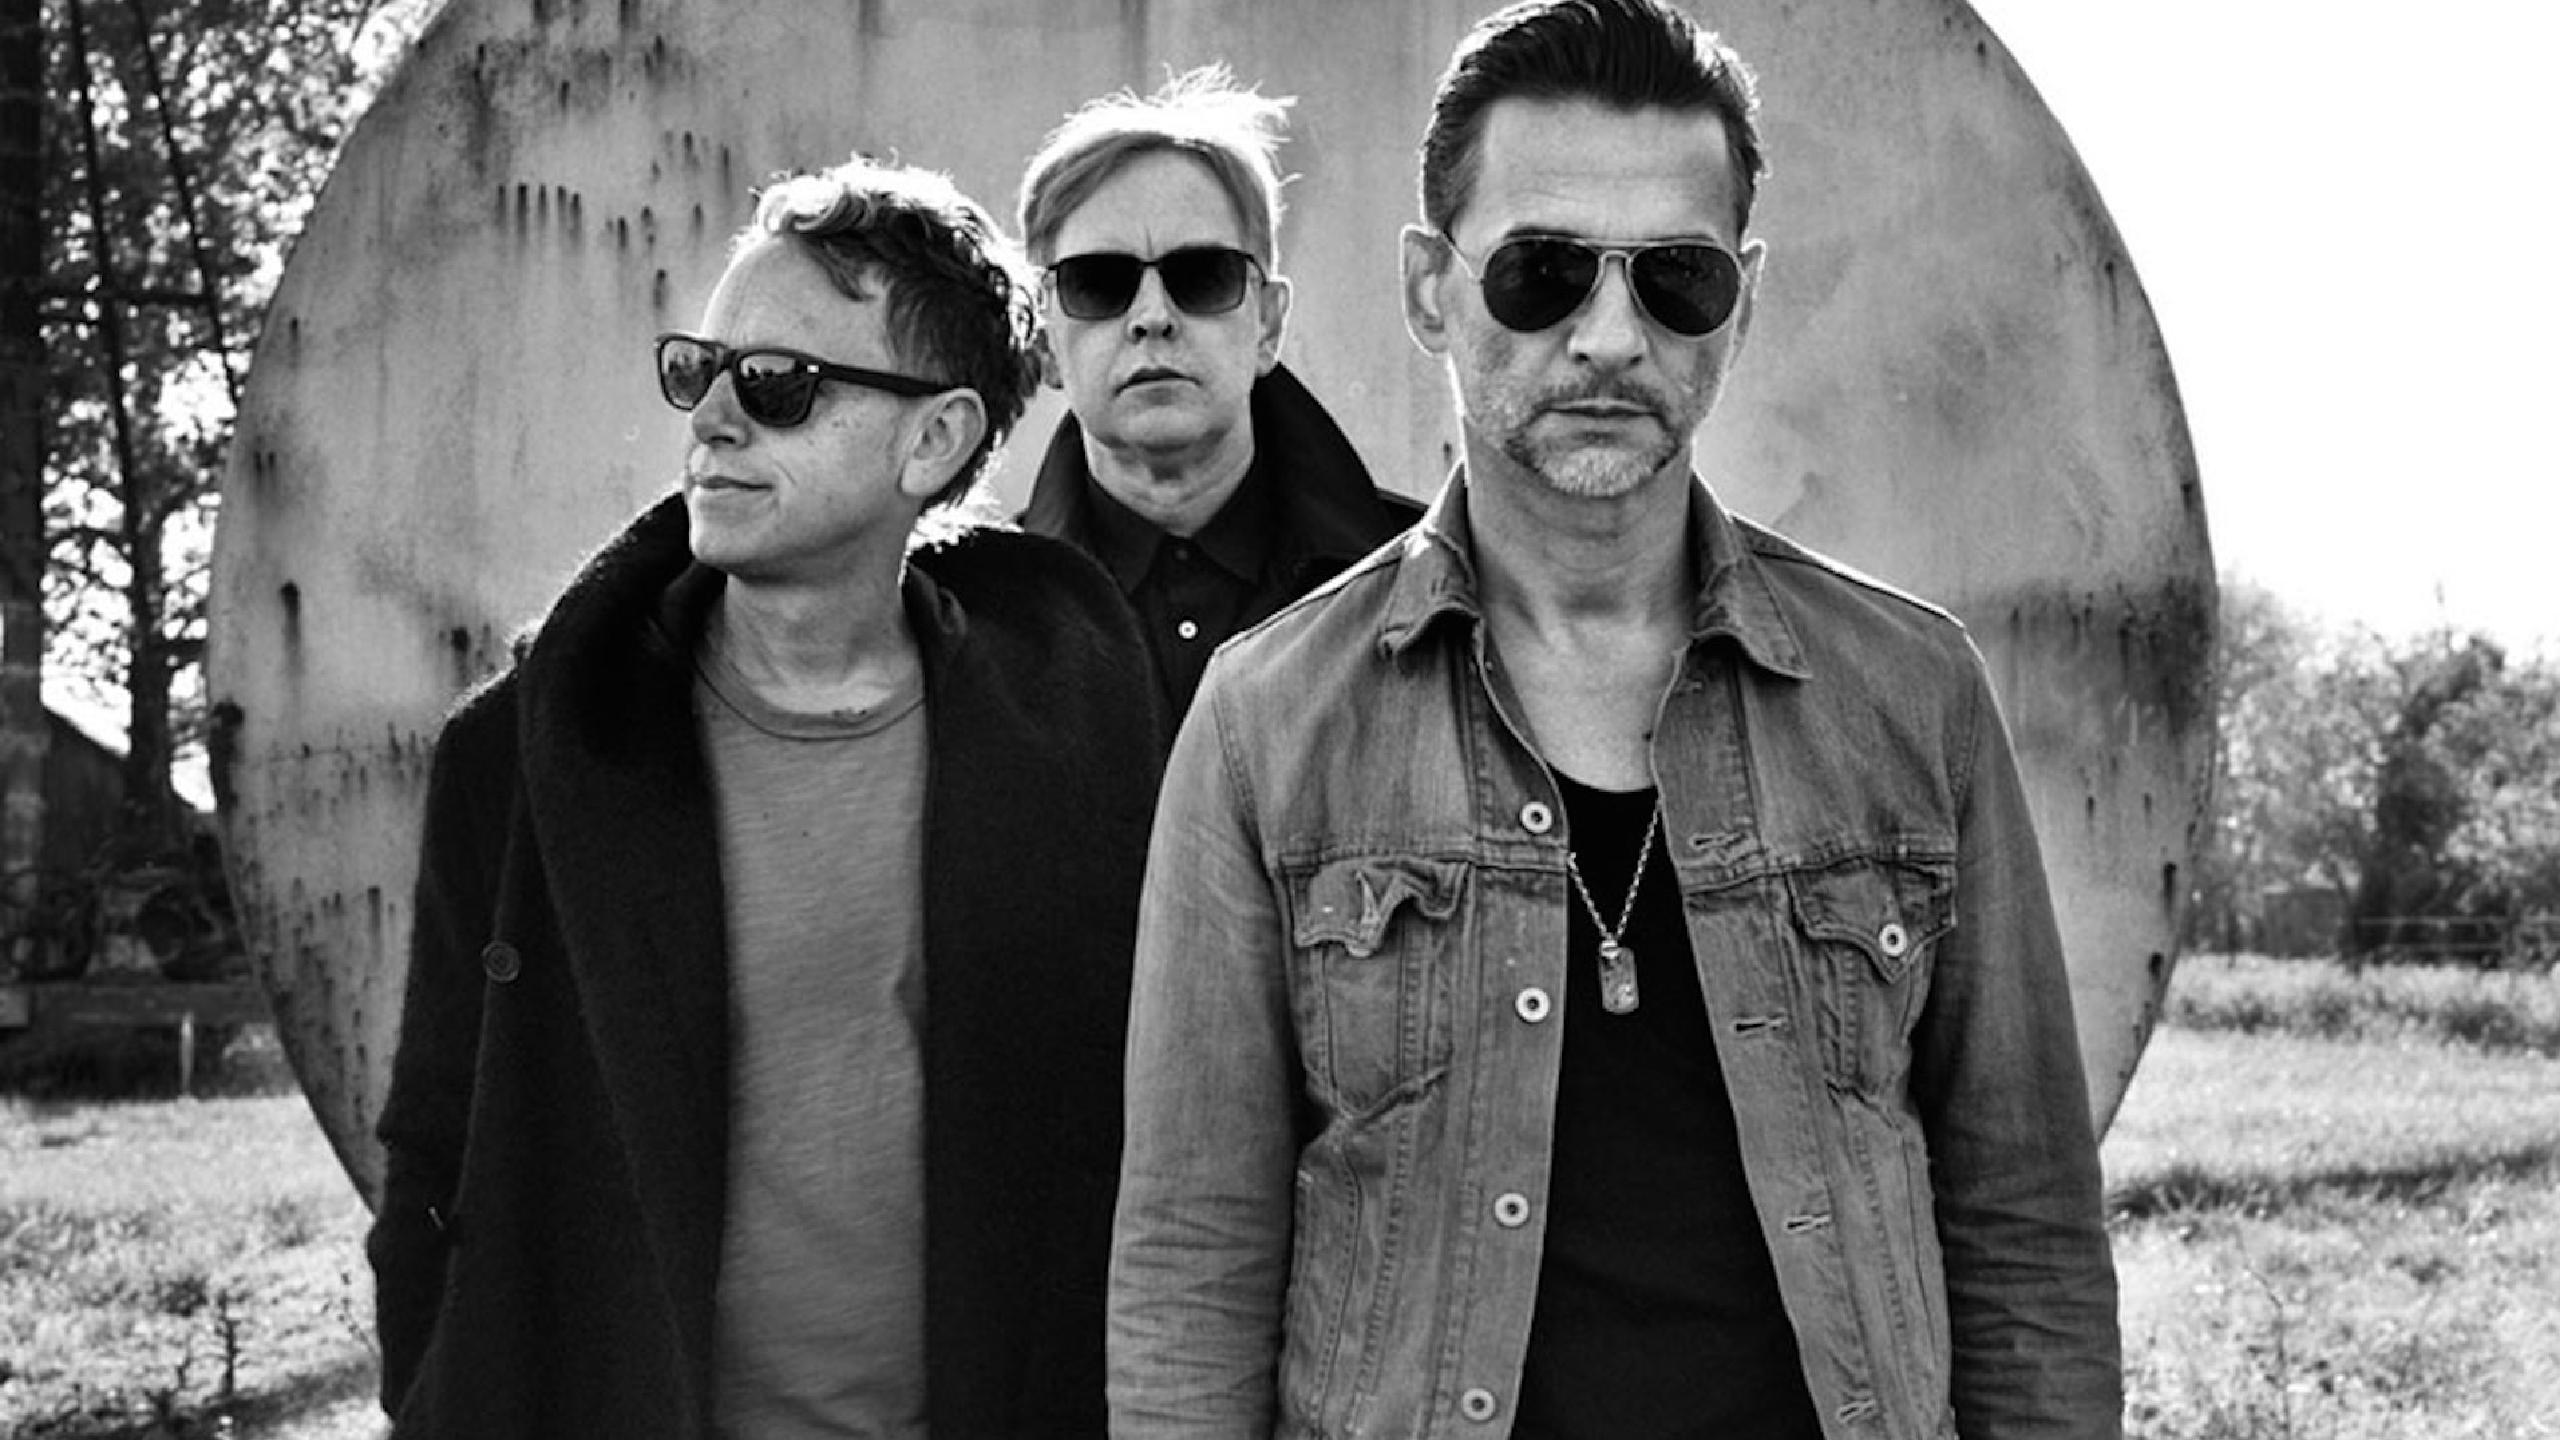 Depeche Mode Tour 2020.Depeche Mode Tour Dates 2019 2020 Depeche Mode Tickets And